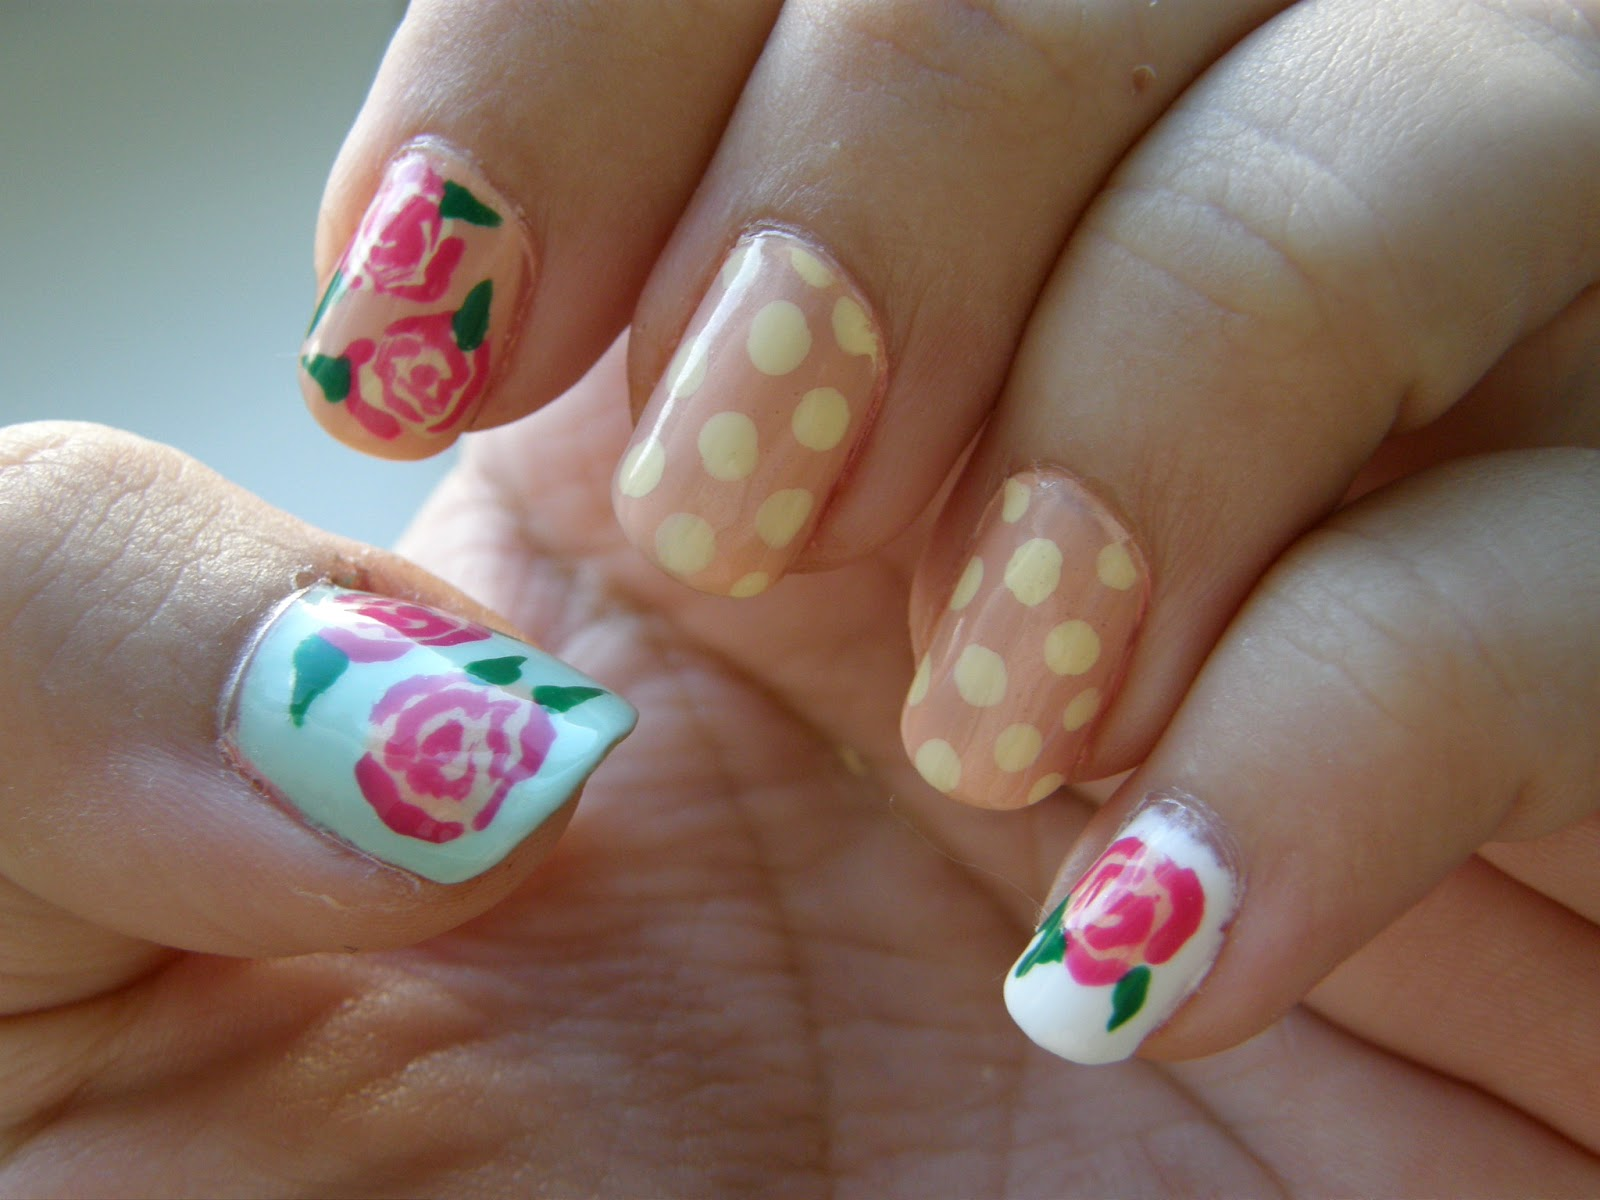 Thrift Thick: NOTD: Vintage Floral Nails